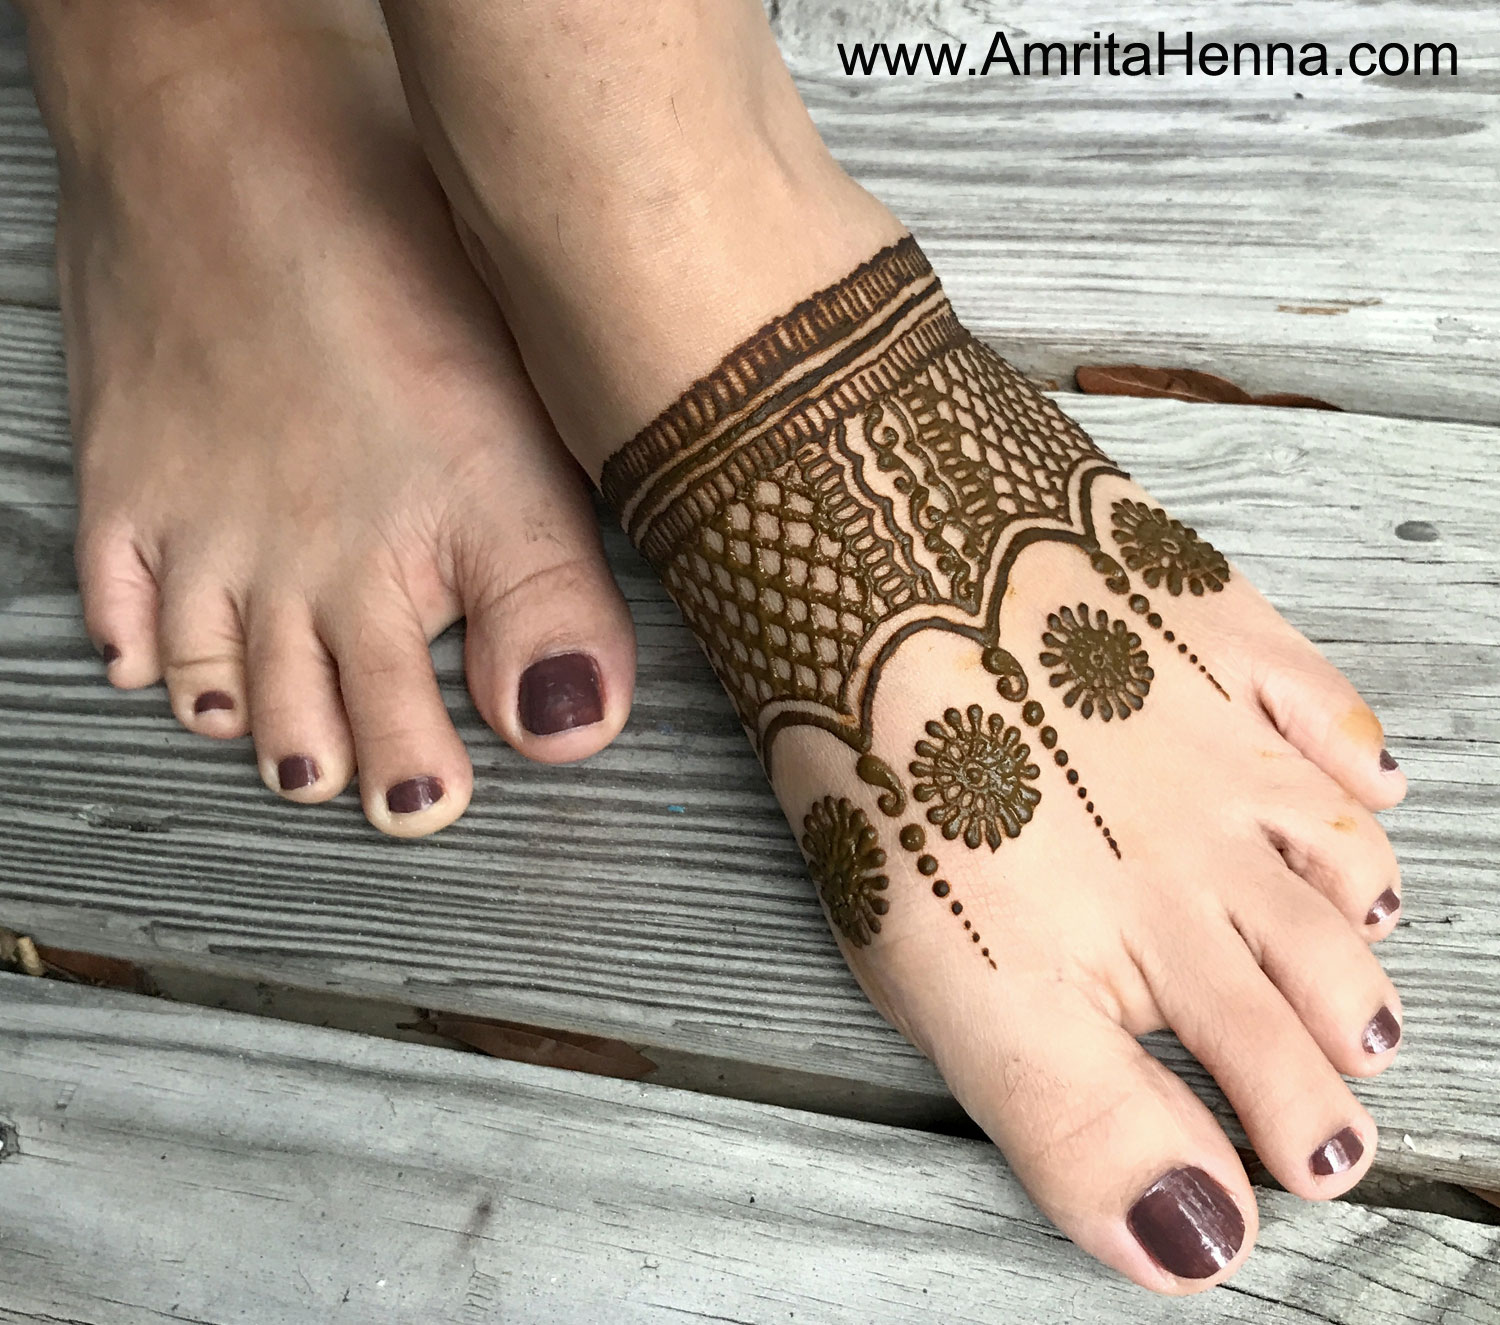 TOP 5 EASY FEET HENNA DESIGNS - 5 MUST TRY MEHNDI DESIGNS FOR FEET - 5 SIMPLE AND EASY MEHENDI DESIGNS FOR THE FEET - TOP 5 SIMPLE FEET MEHANDI DESIGNS - BEST FEET MEHNDI DESIGNS - 5 AWESOME FEET HENNA DESIGNS FOR BEGINNERS - TOP 5 LATEST FEET MEHENDI DESIGNS FOR BEGINNERS - TOP 5 BEST FEET MEHANDI DESIGNS FOR BEGINNERS - FEET HENNA DESIGNS - UNIQUE FEET HENNA DESIGNS FOR BEGINNERS - TOP 5 QUICK FEET HENNA DESIGNS - QUICK MEHENDI DESIGNS FOR THE FEET